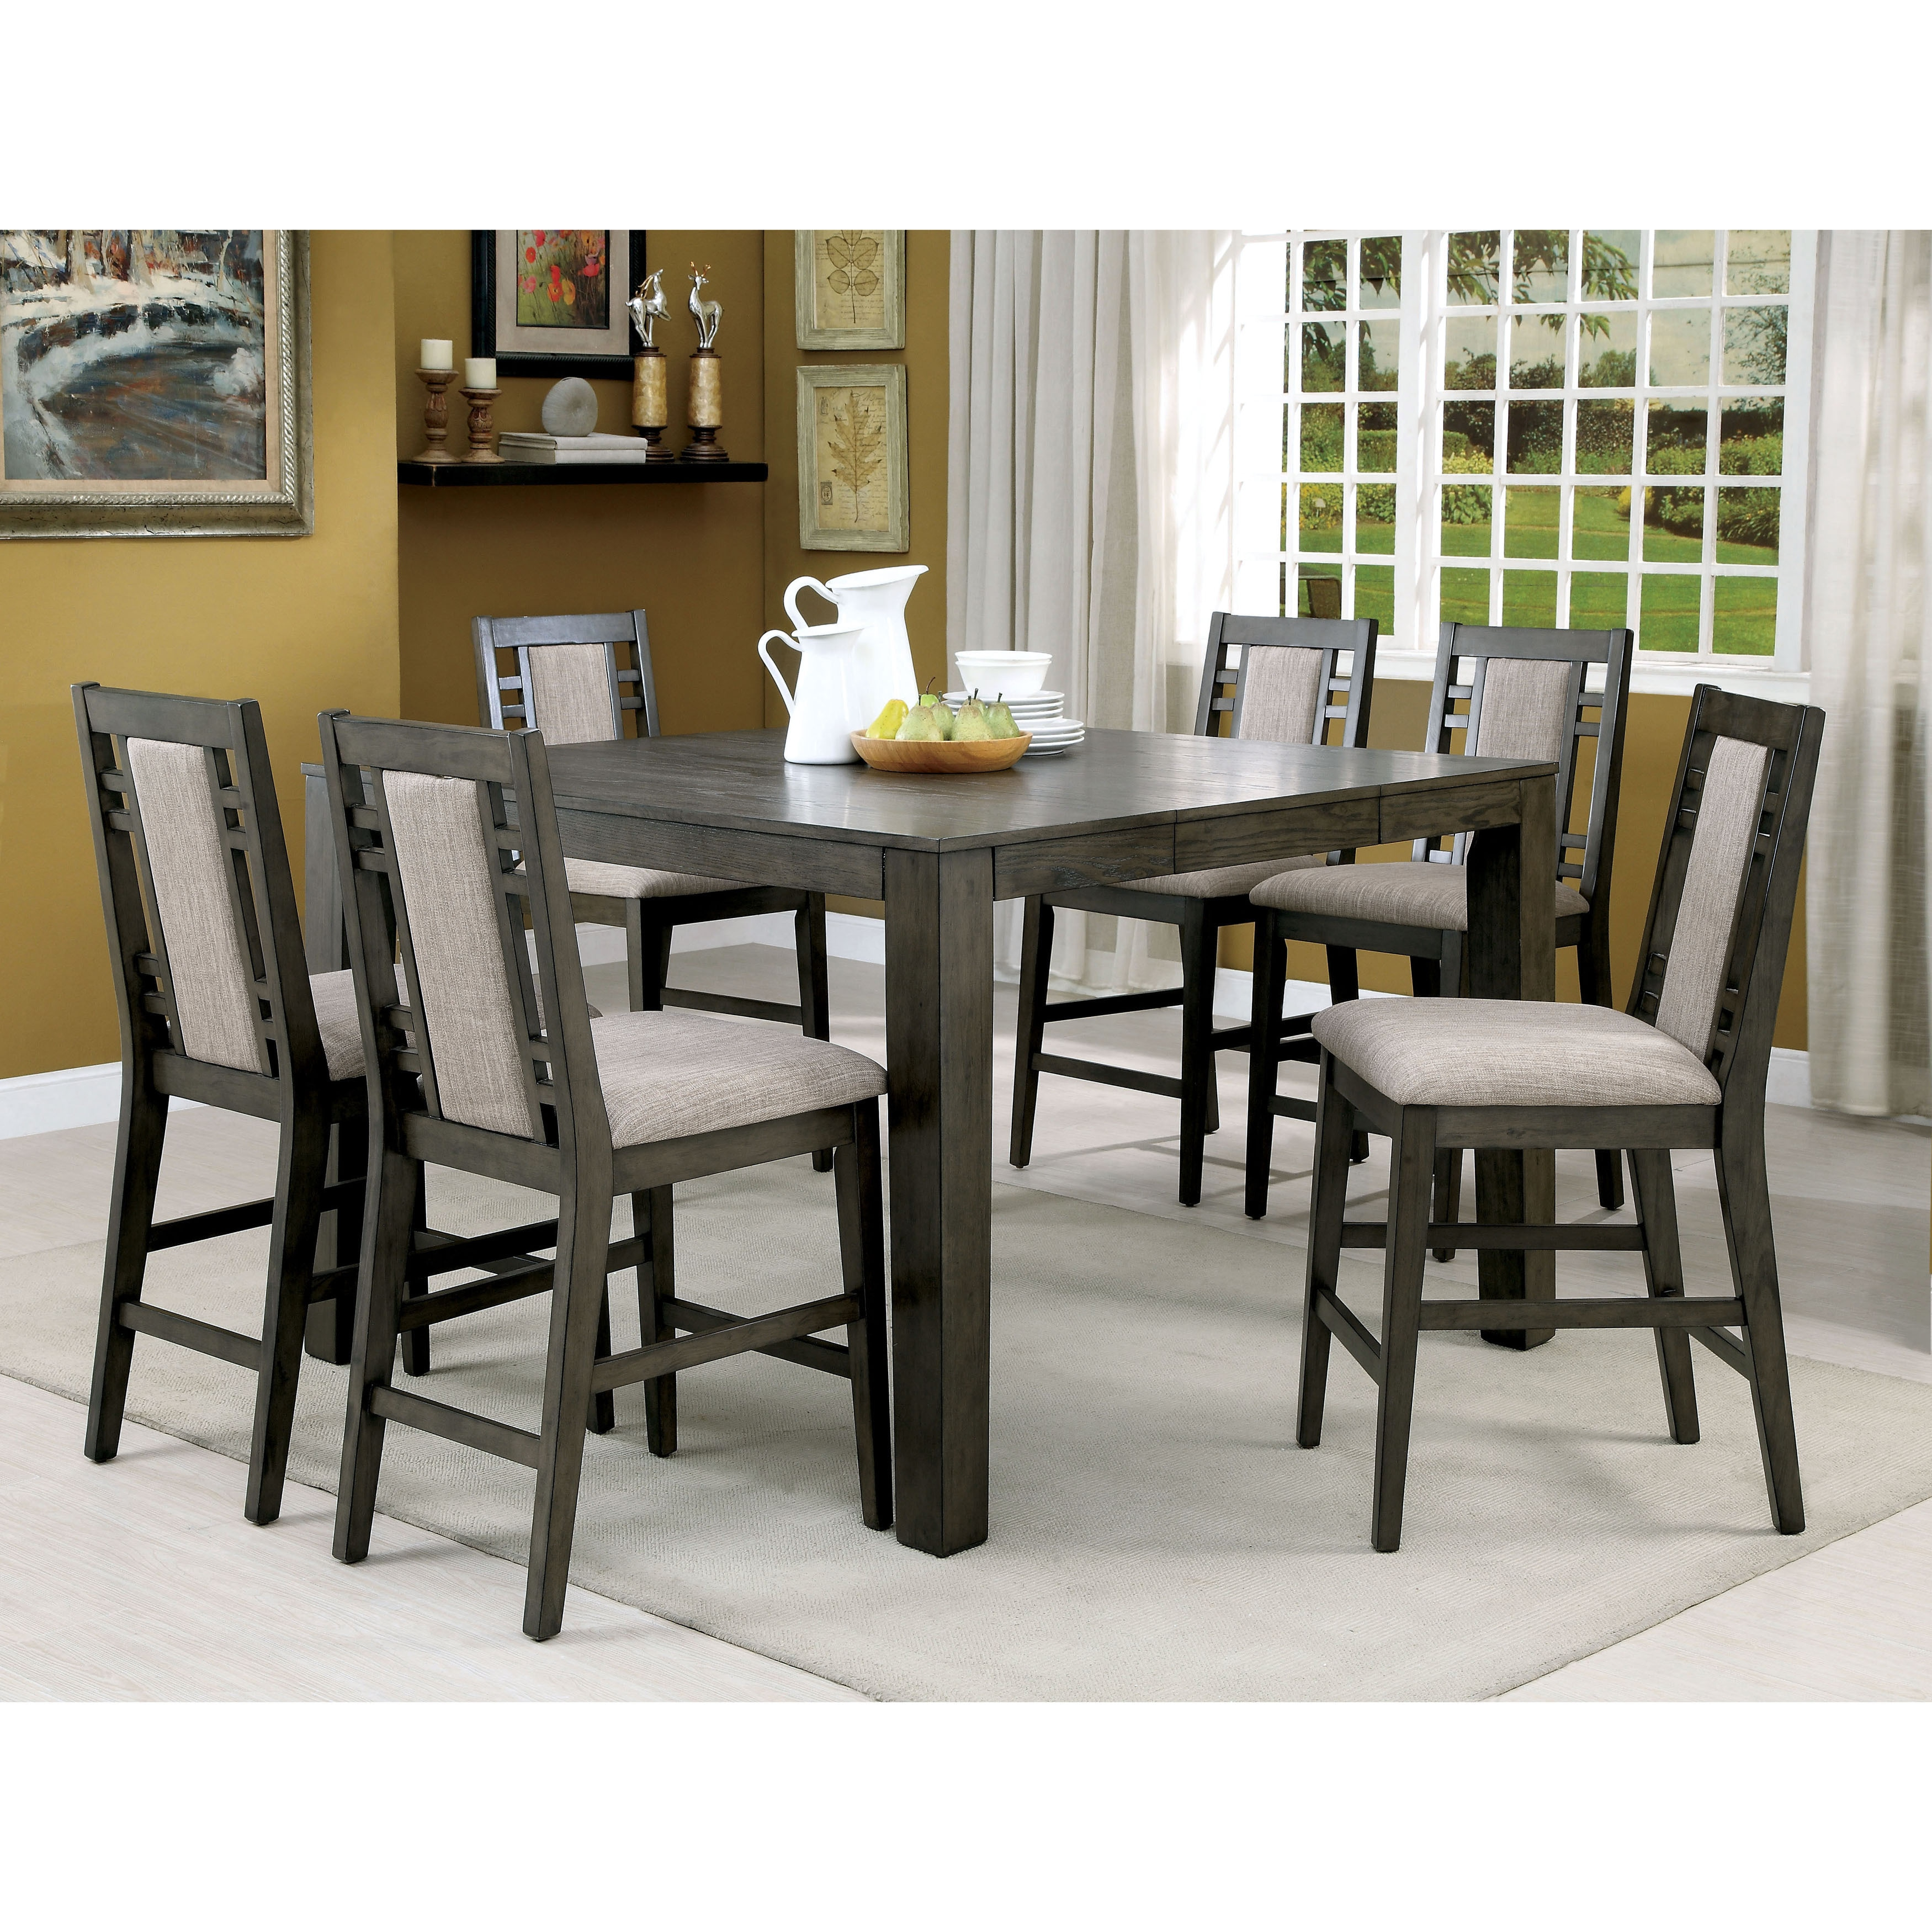 Furniture of America Basson Rustic Grey Expandable Counte...